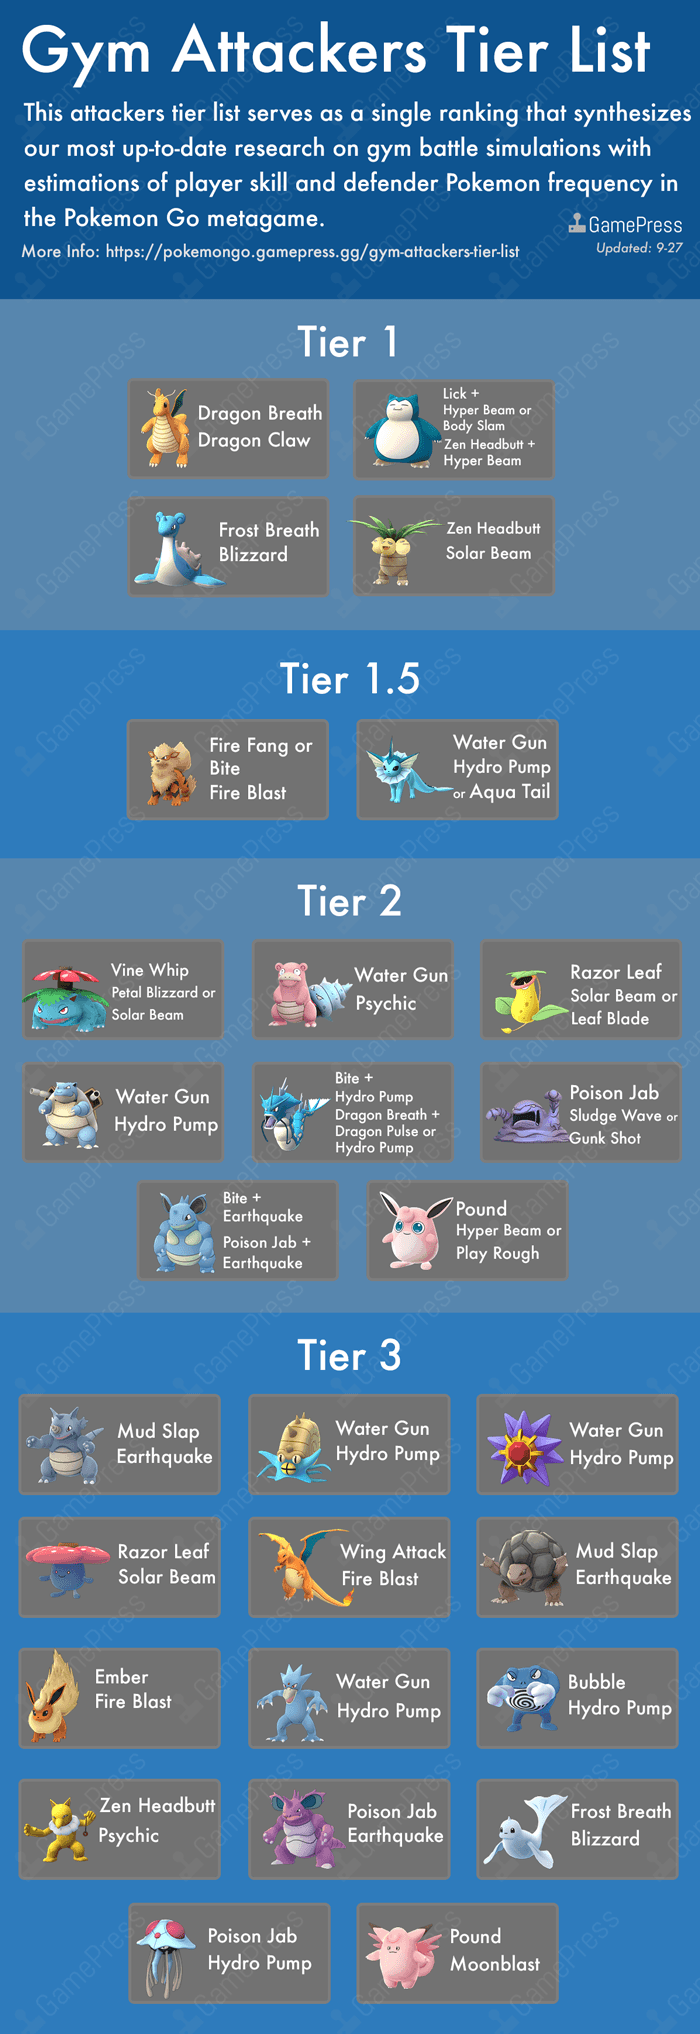 attackers-tier-list-9-26_1